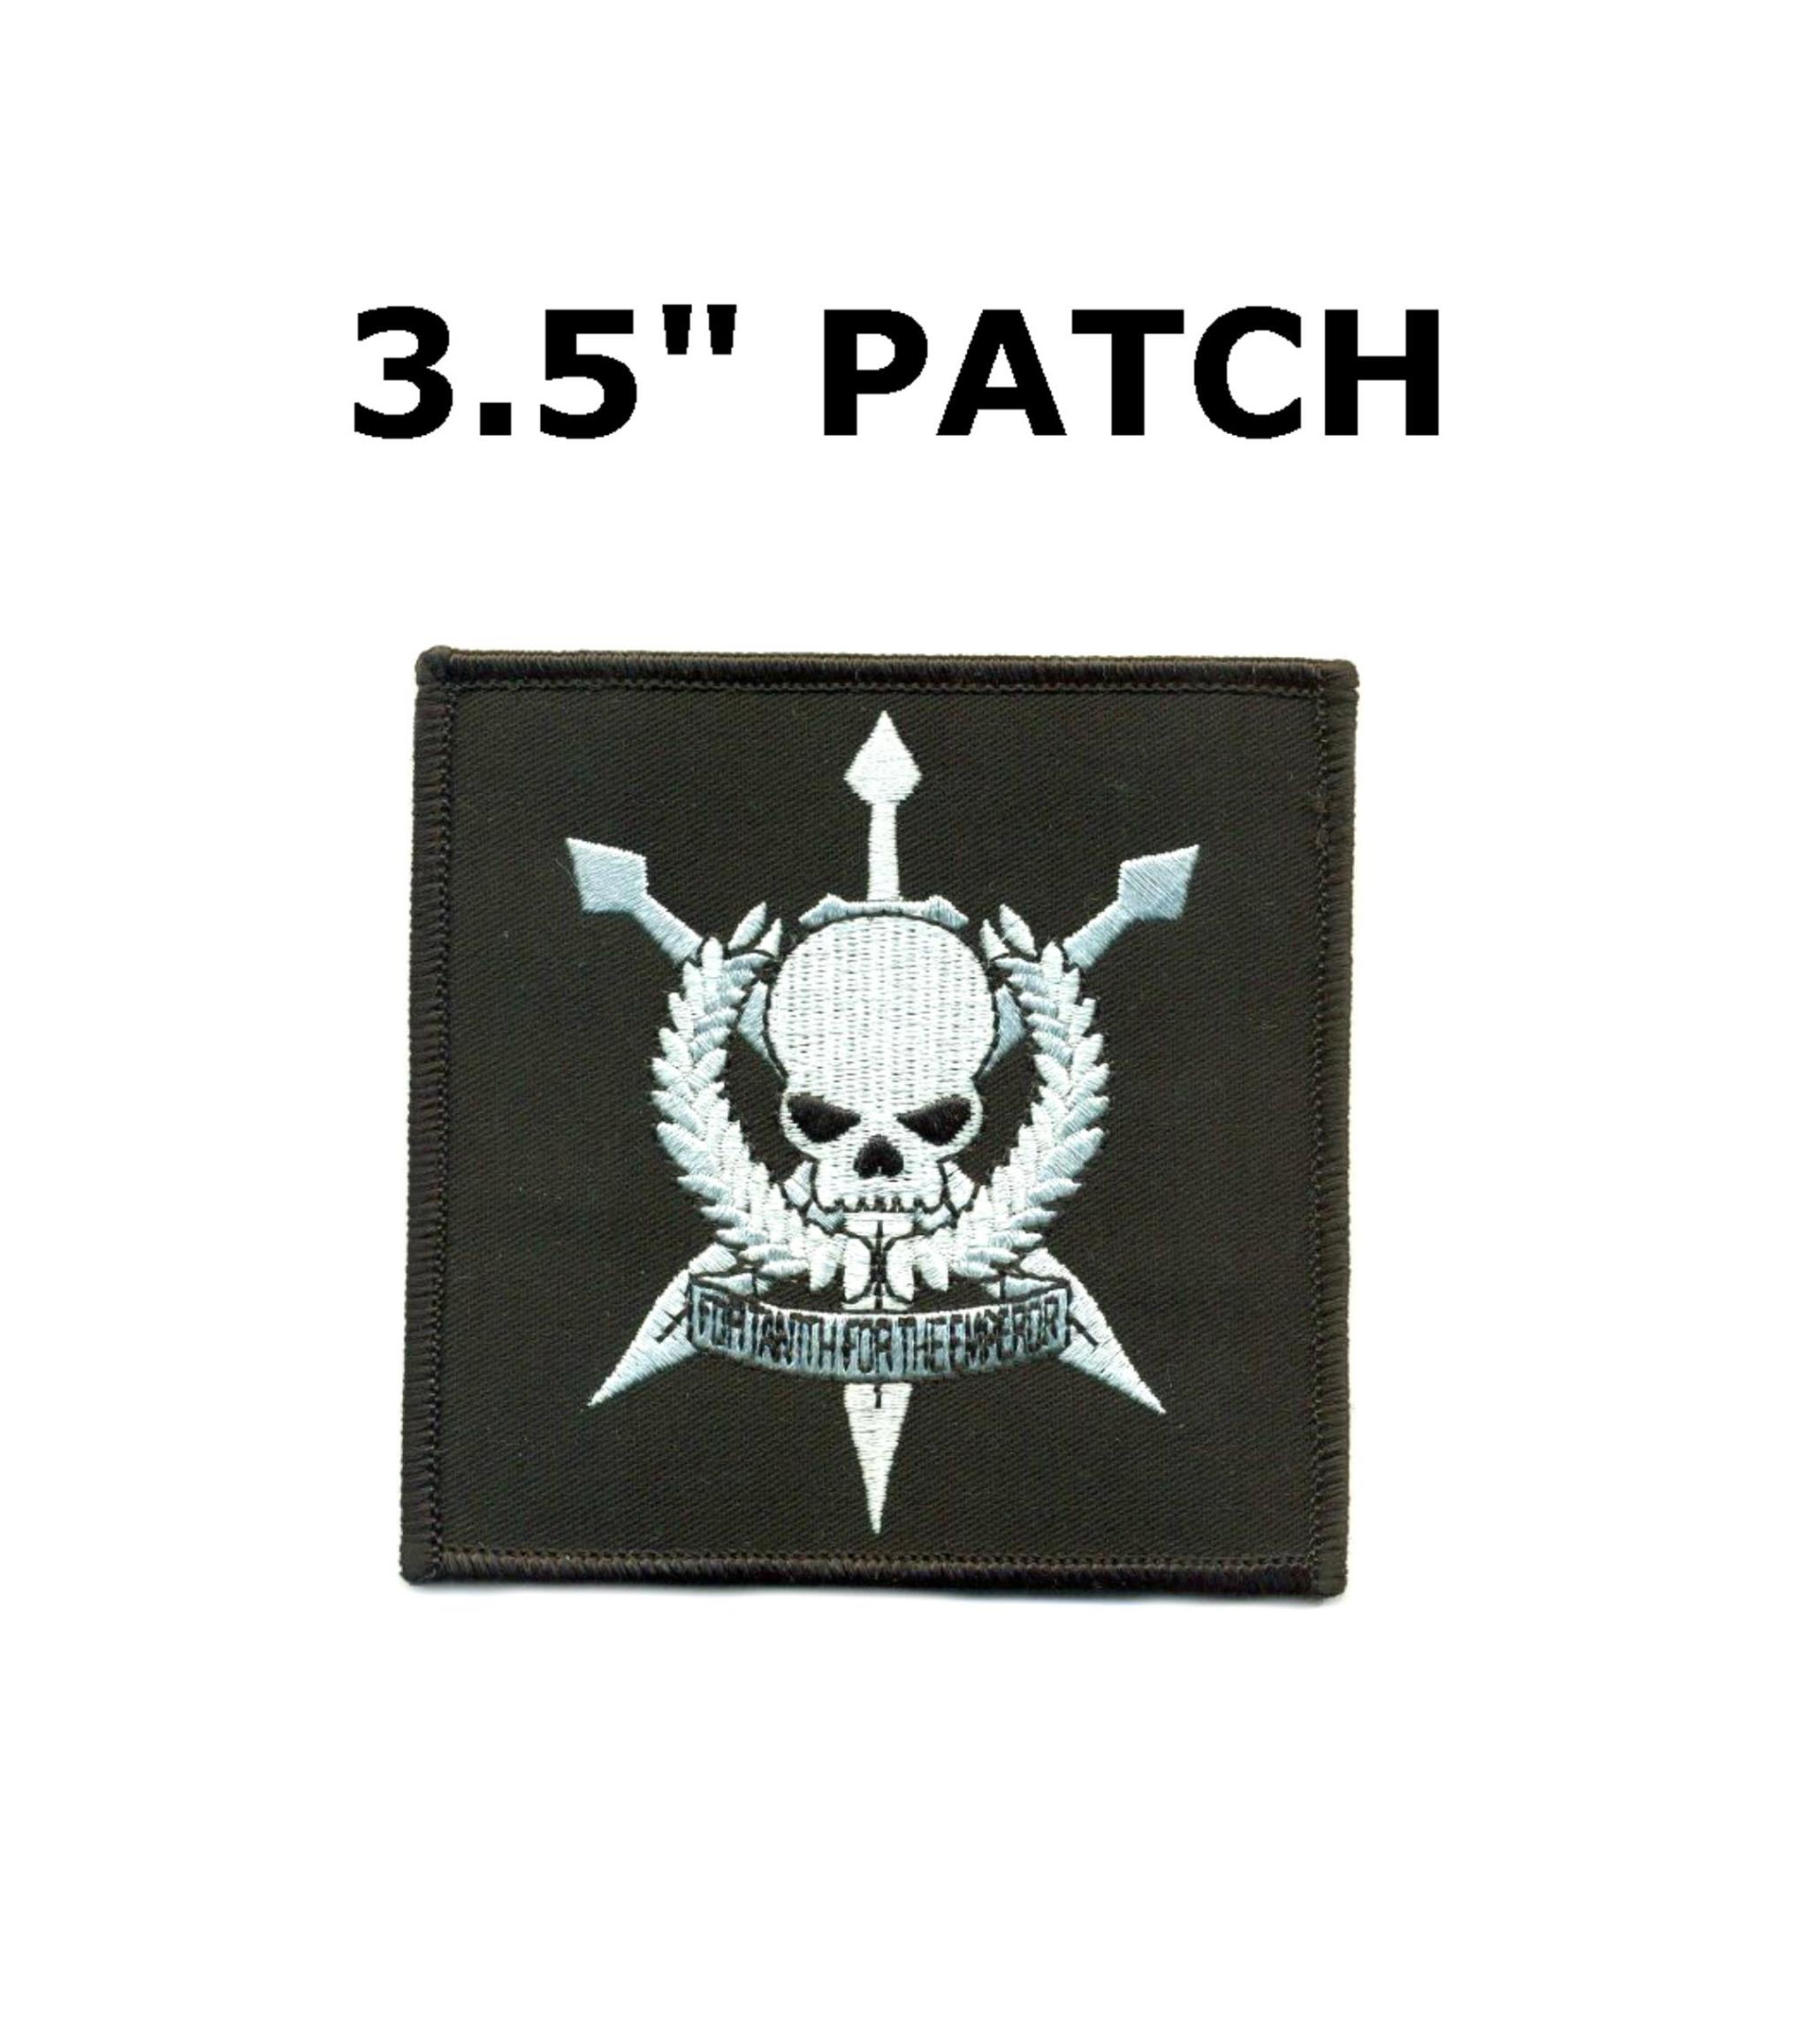 Chaos Marine Embroidered Hook Loop Patch Warhammer 40K Name Tag sew-on Applique